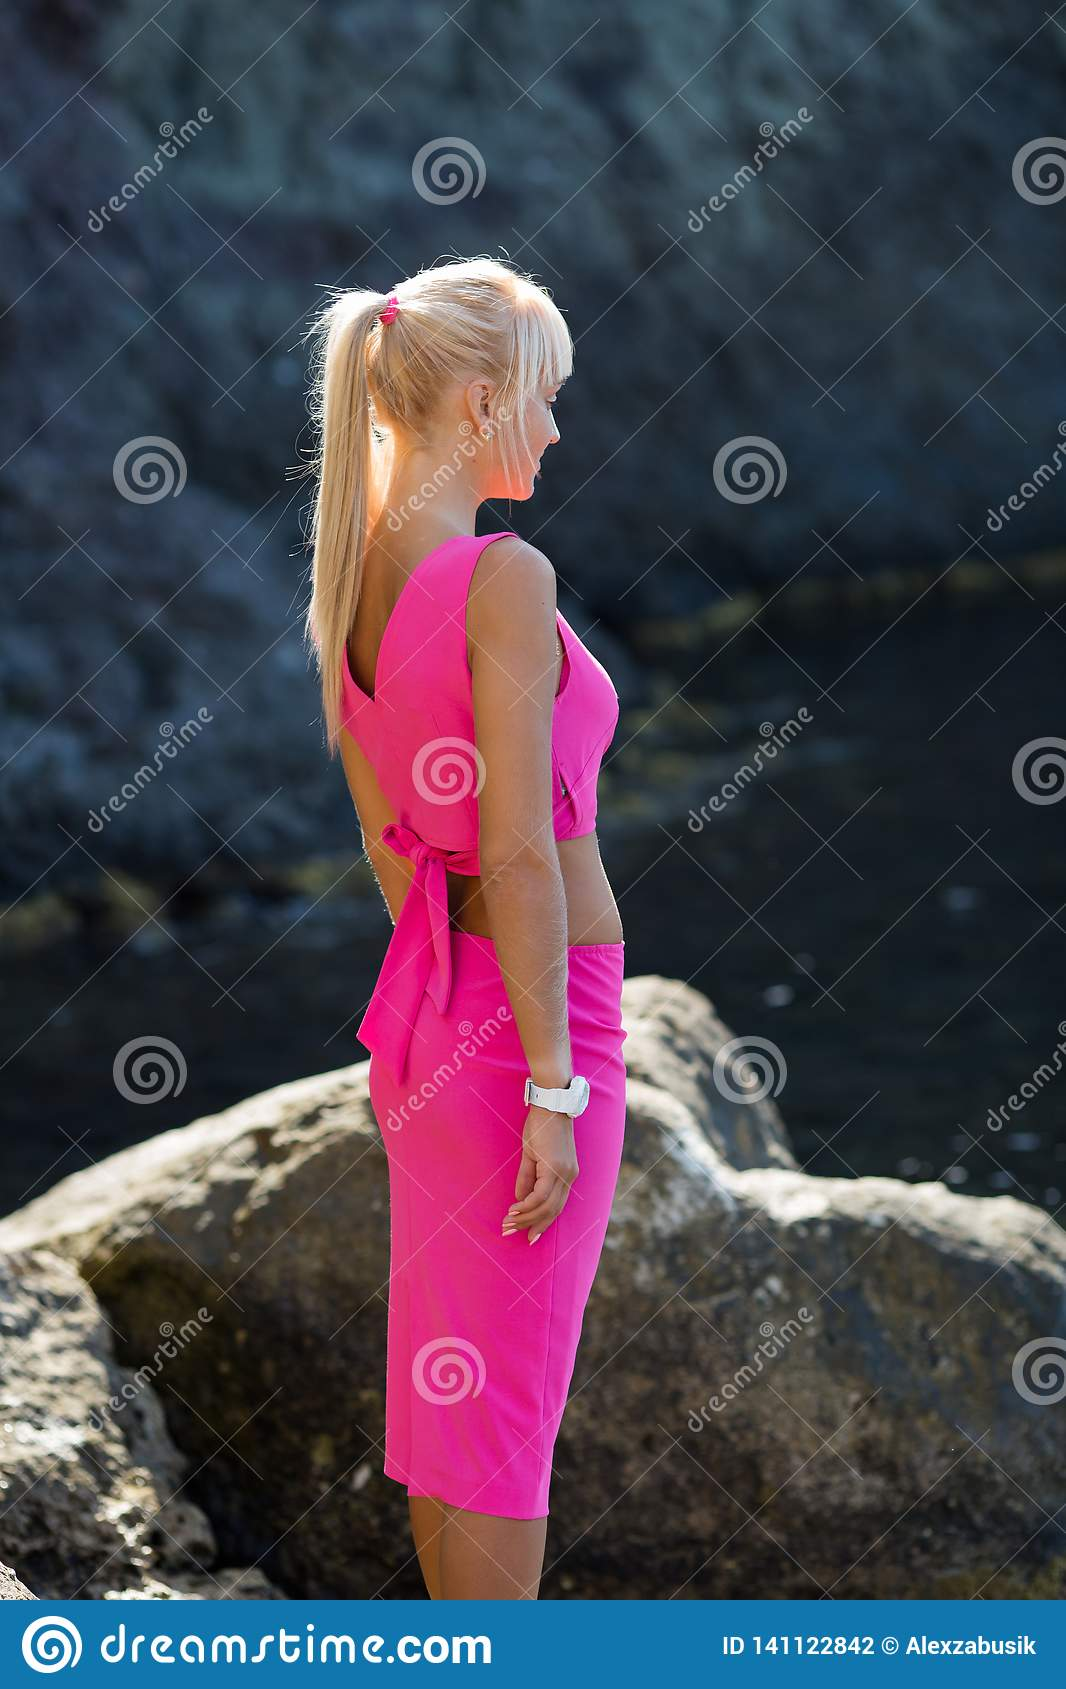 Side view portrait of woman in pink top and skirt against natural rocky cliff